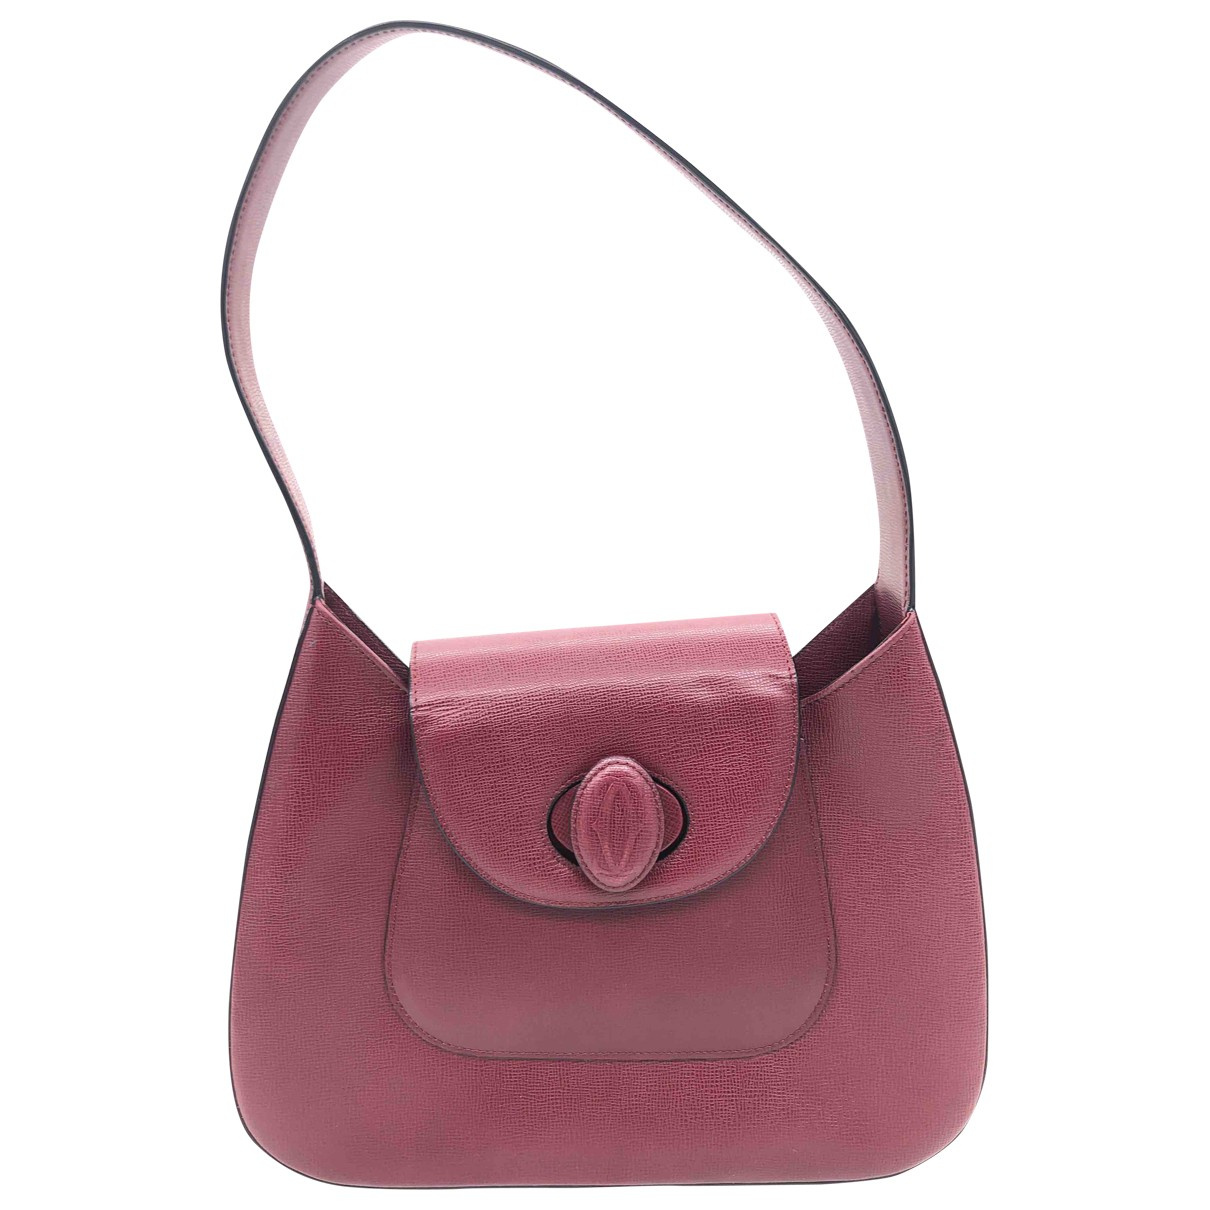 Cartier \N Leather handbag for Women \N